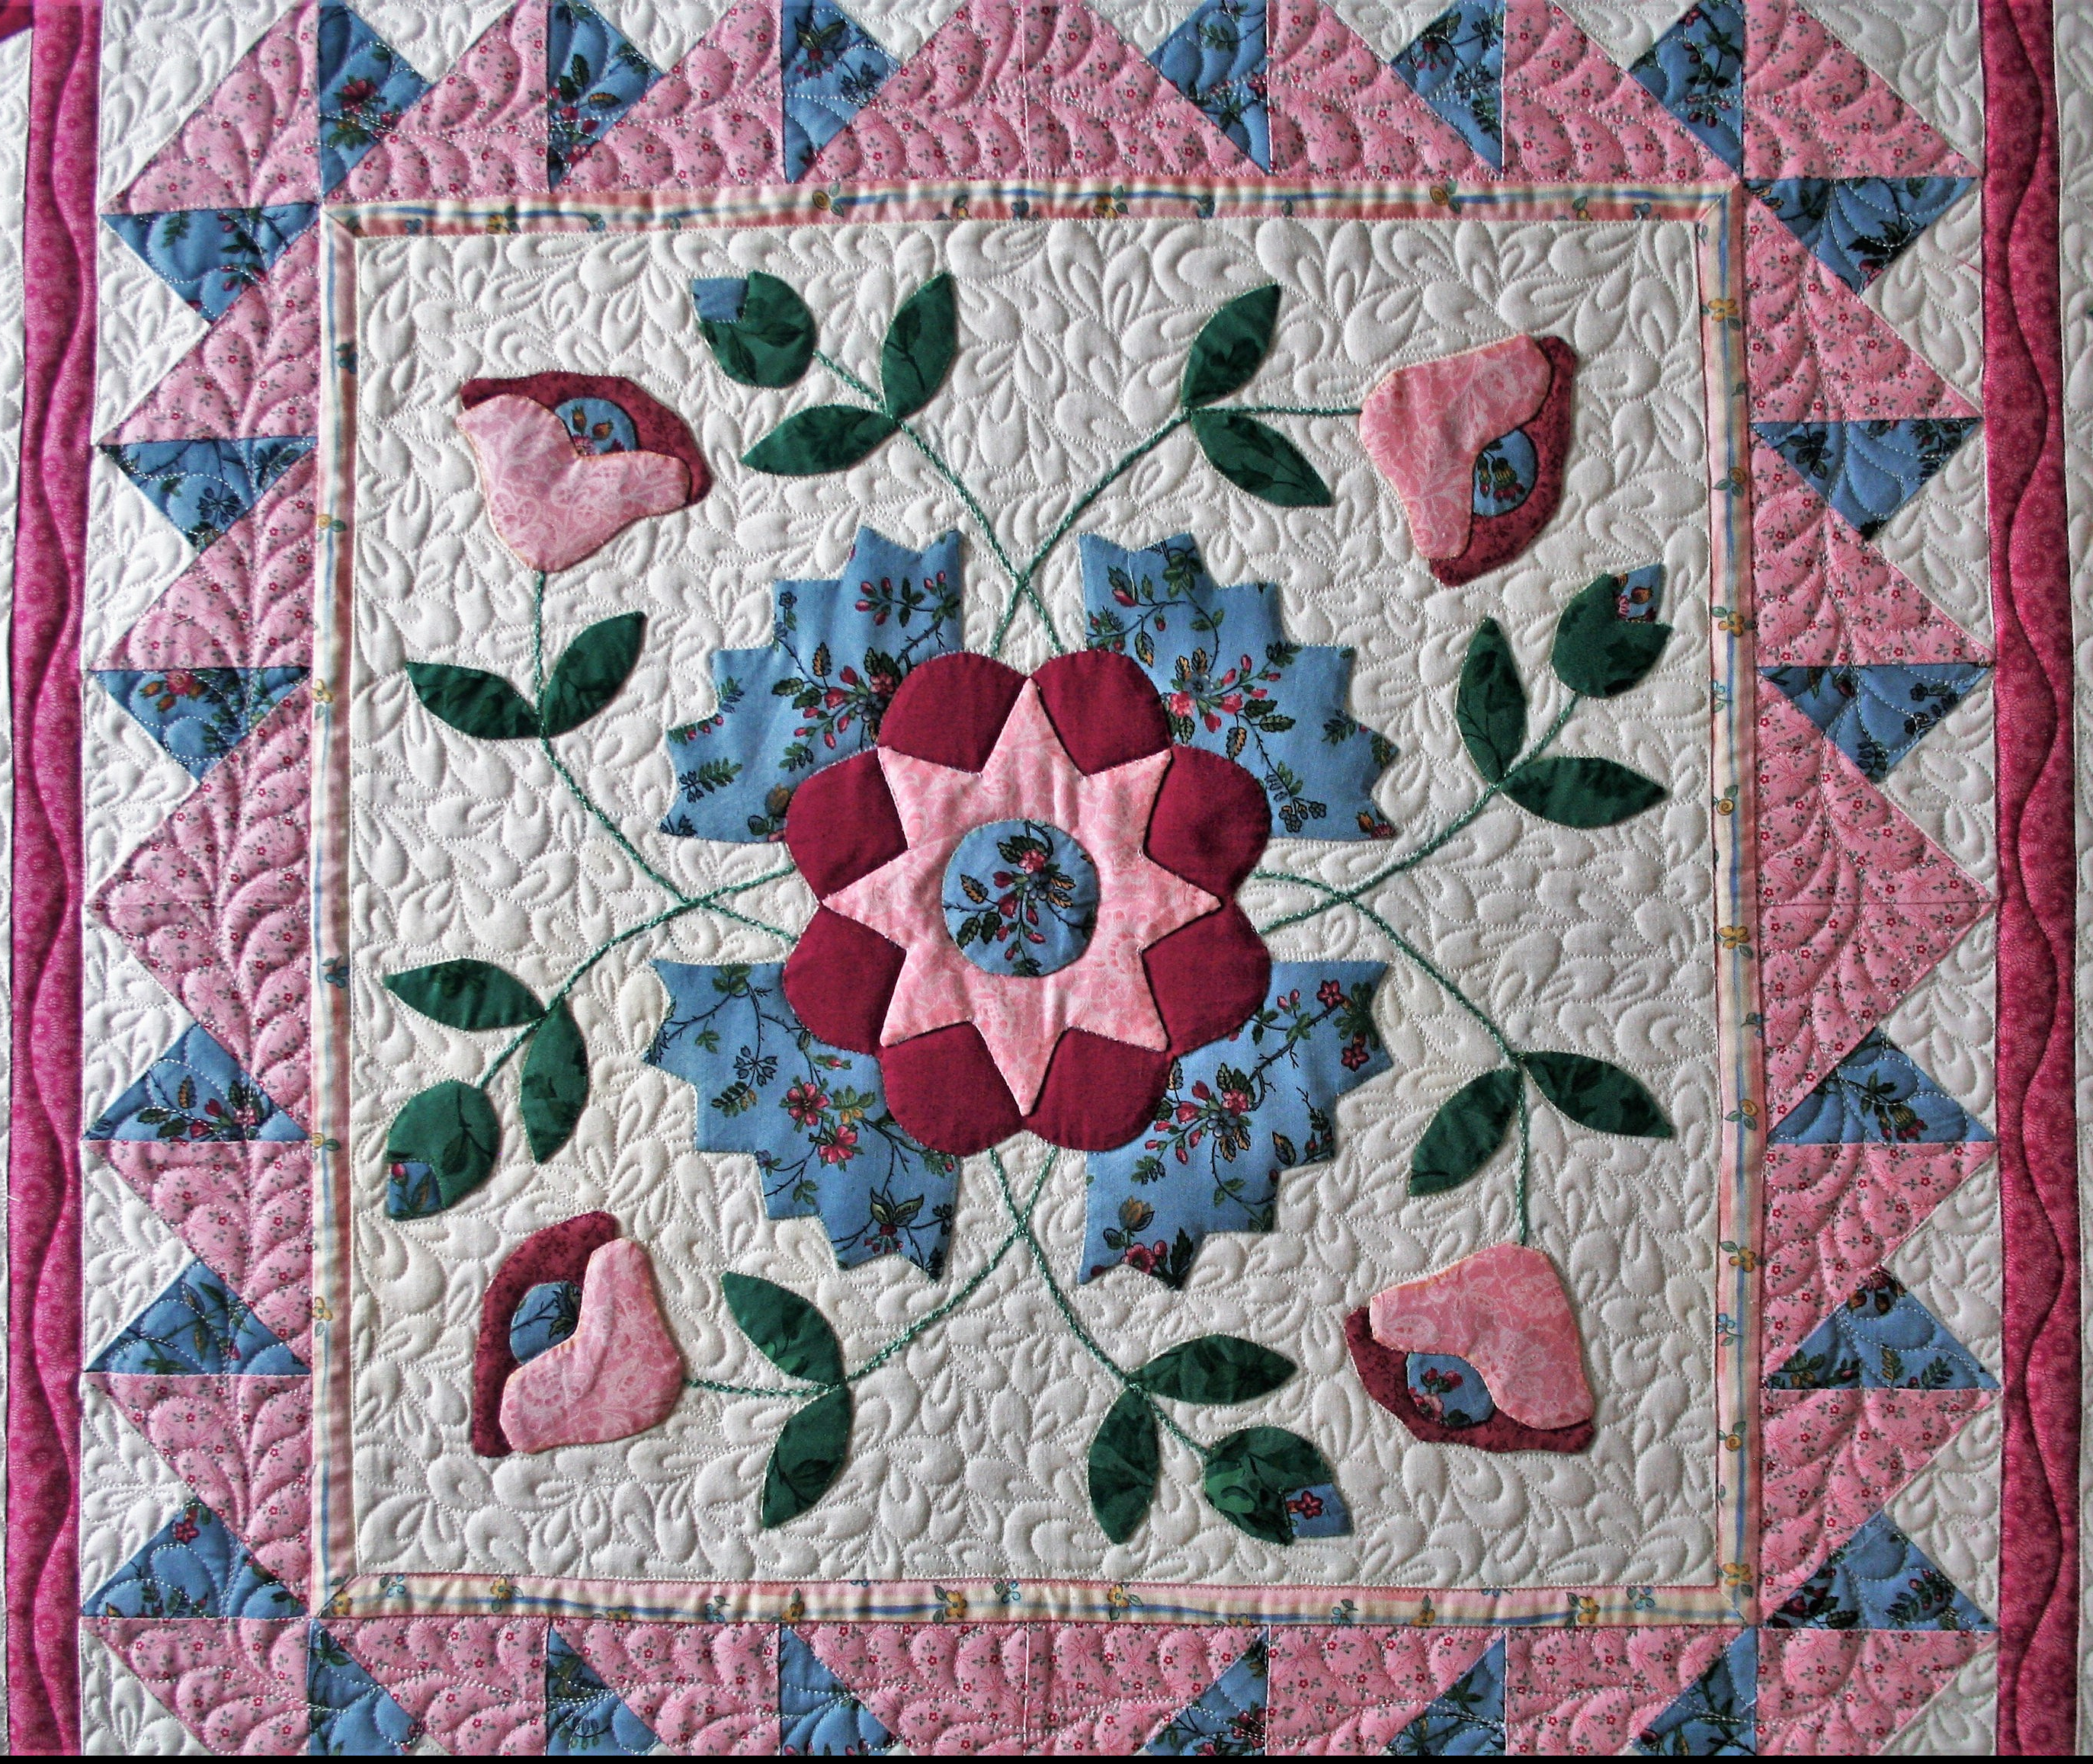 Pink Applique Wall Hanging (center)